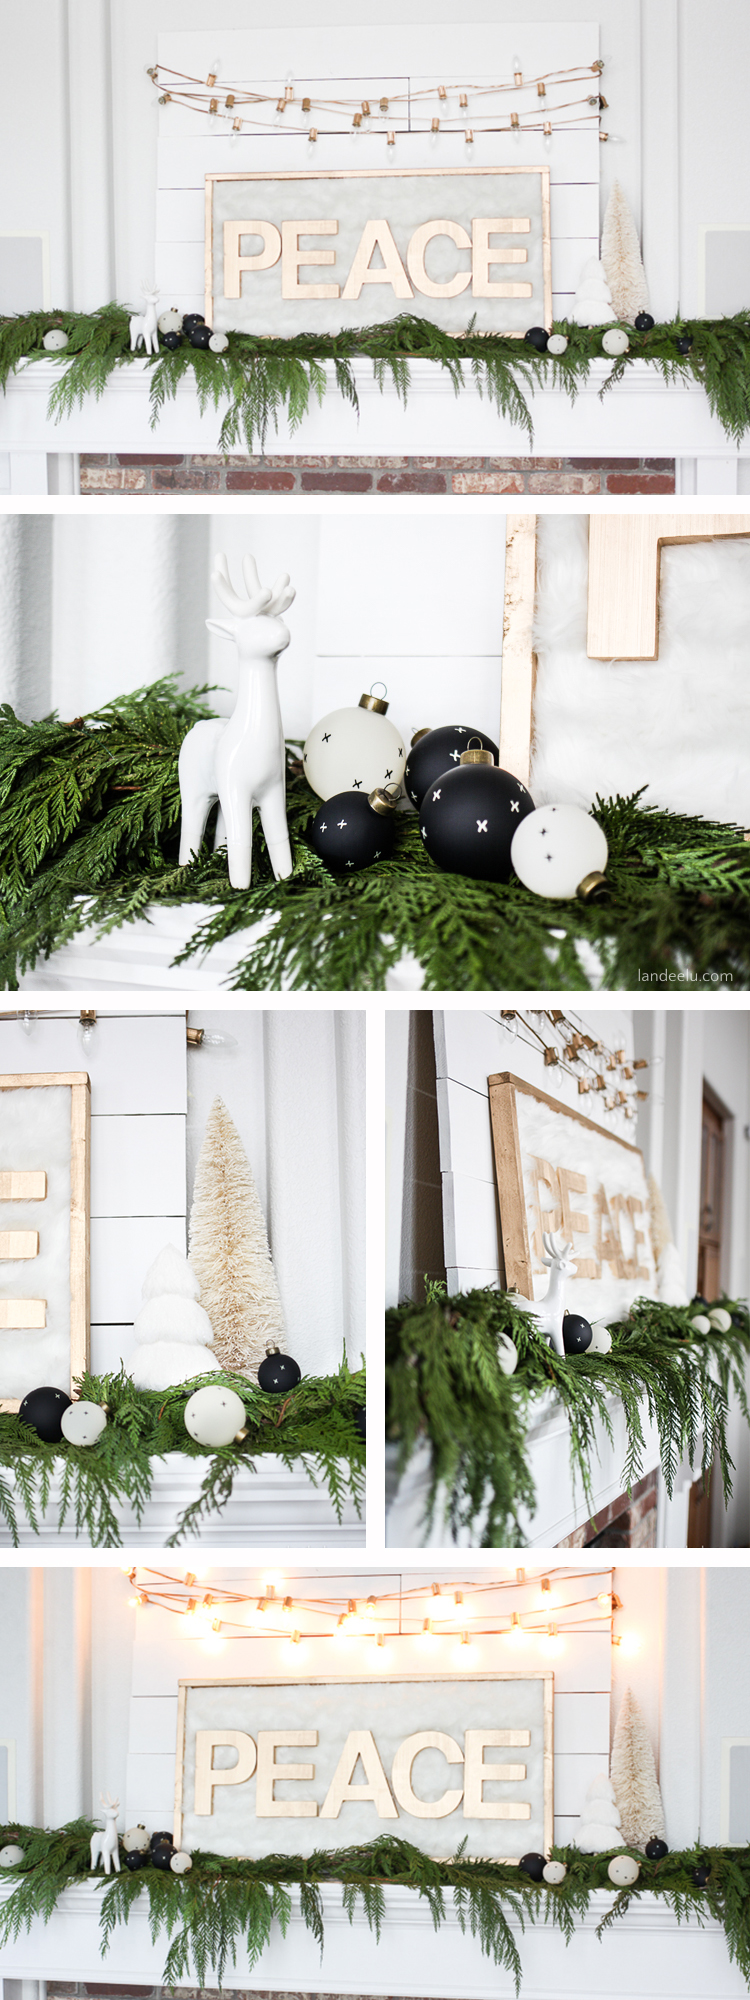 Beautiful and simple decor.... and I LOVE fresh Christmas garland!